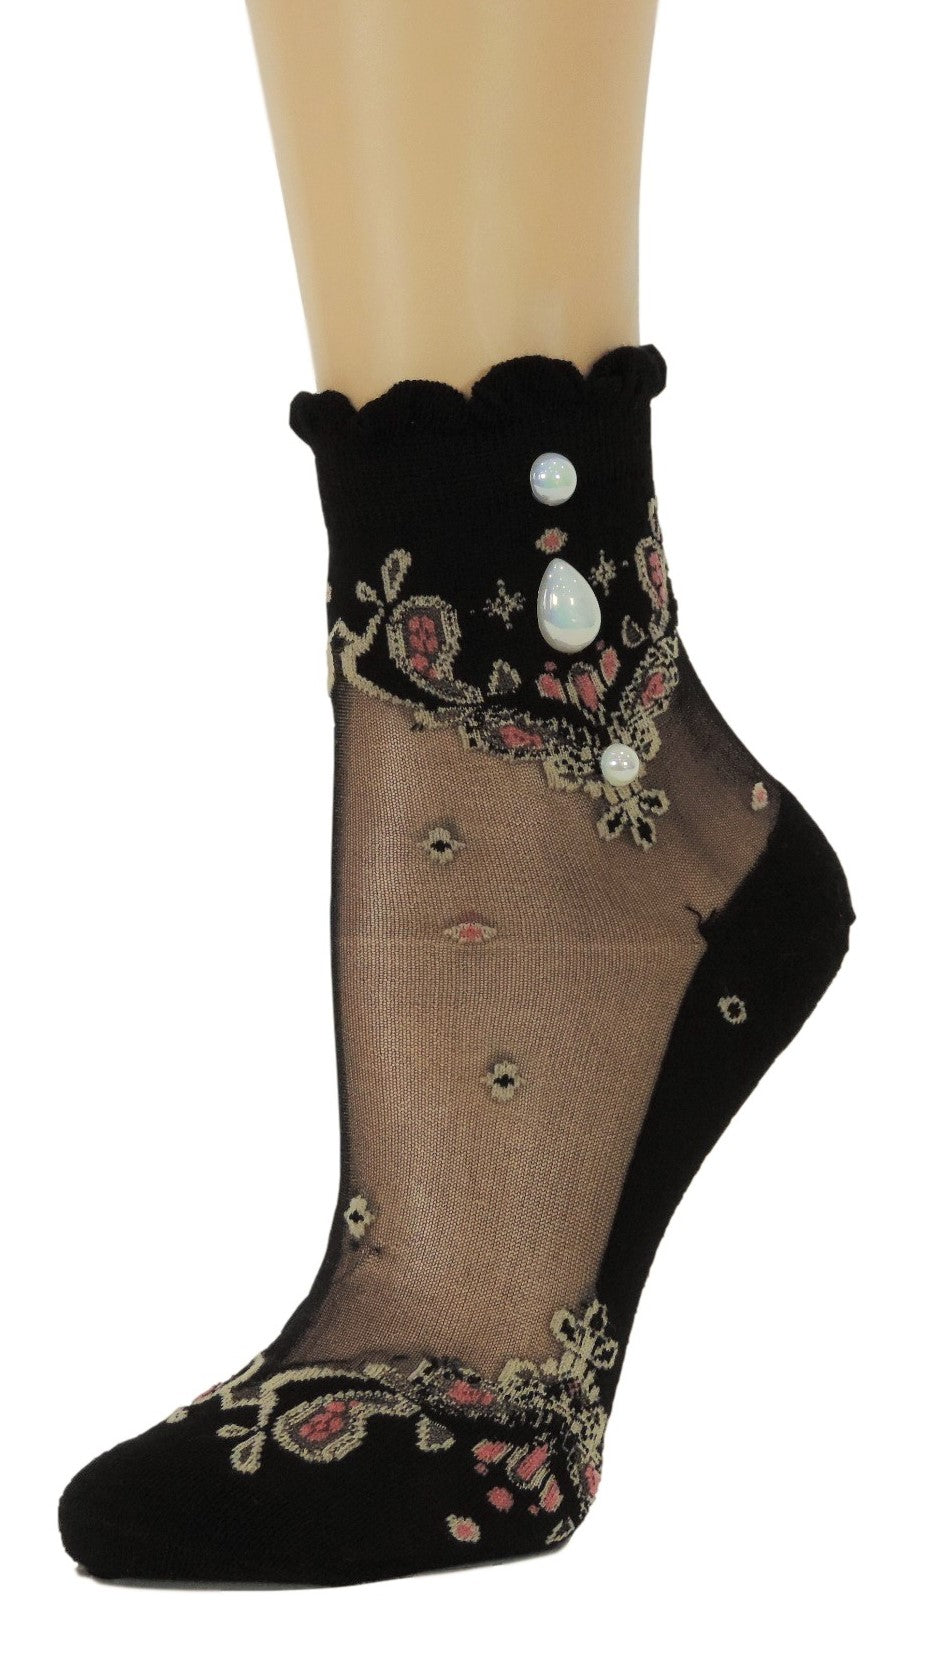 Royal Chandelier Custom Sheer Socks with beads - Global Trendz Fashion®